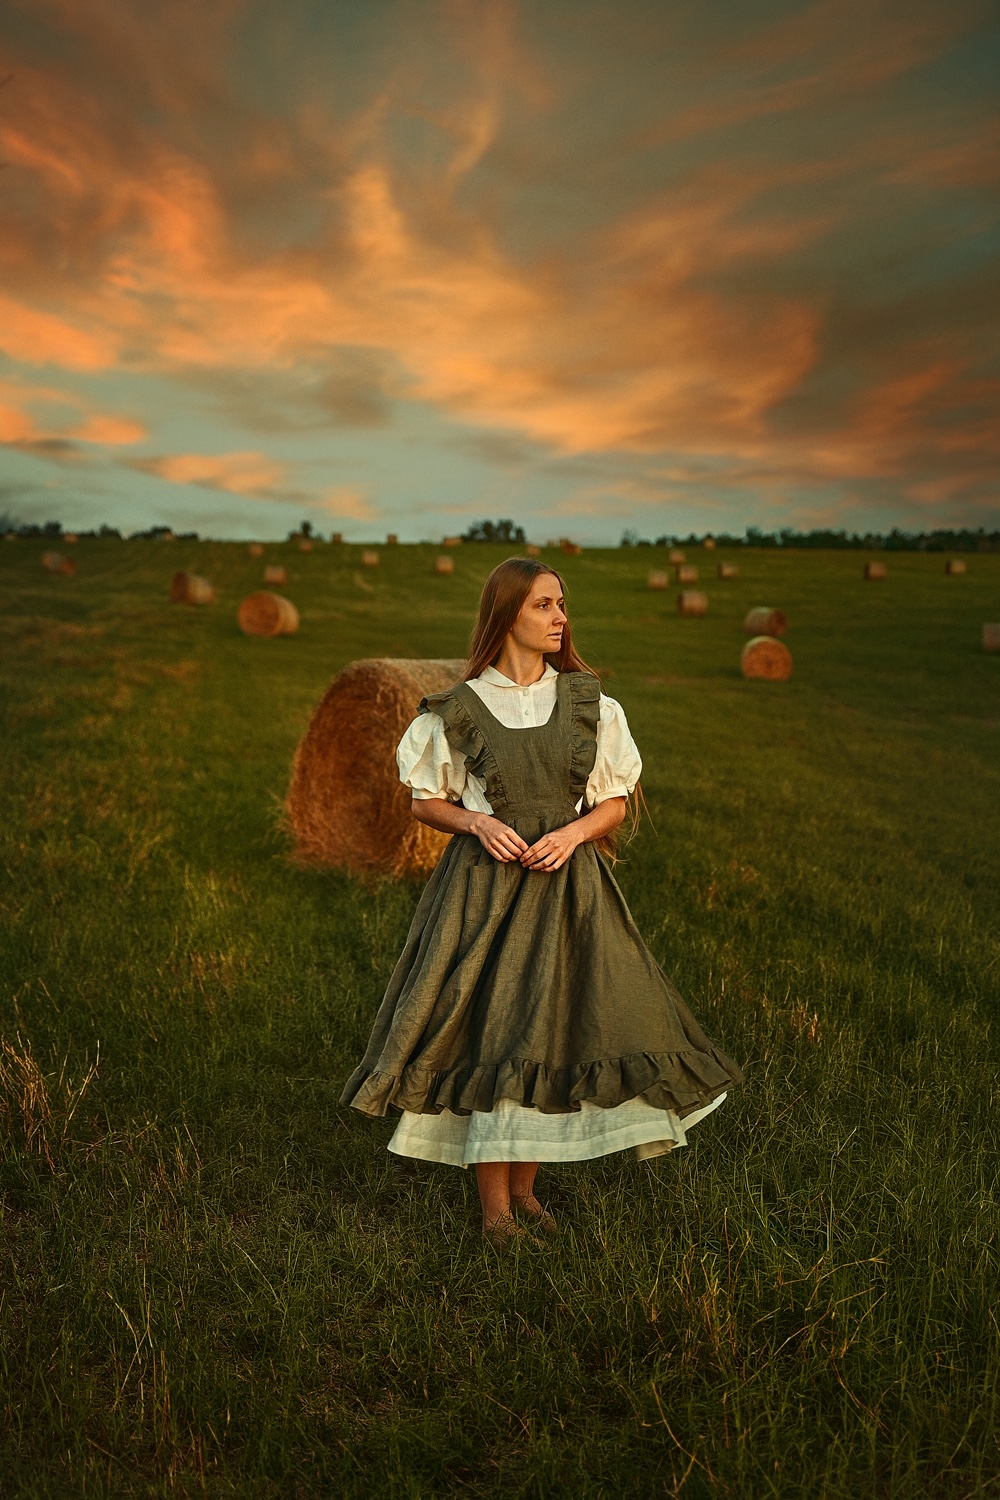 A woman standing in a field of stacked hay wearing a cottagecore dress and pinafore